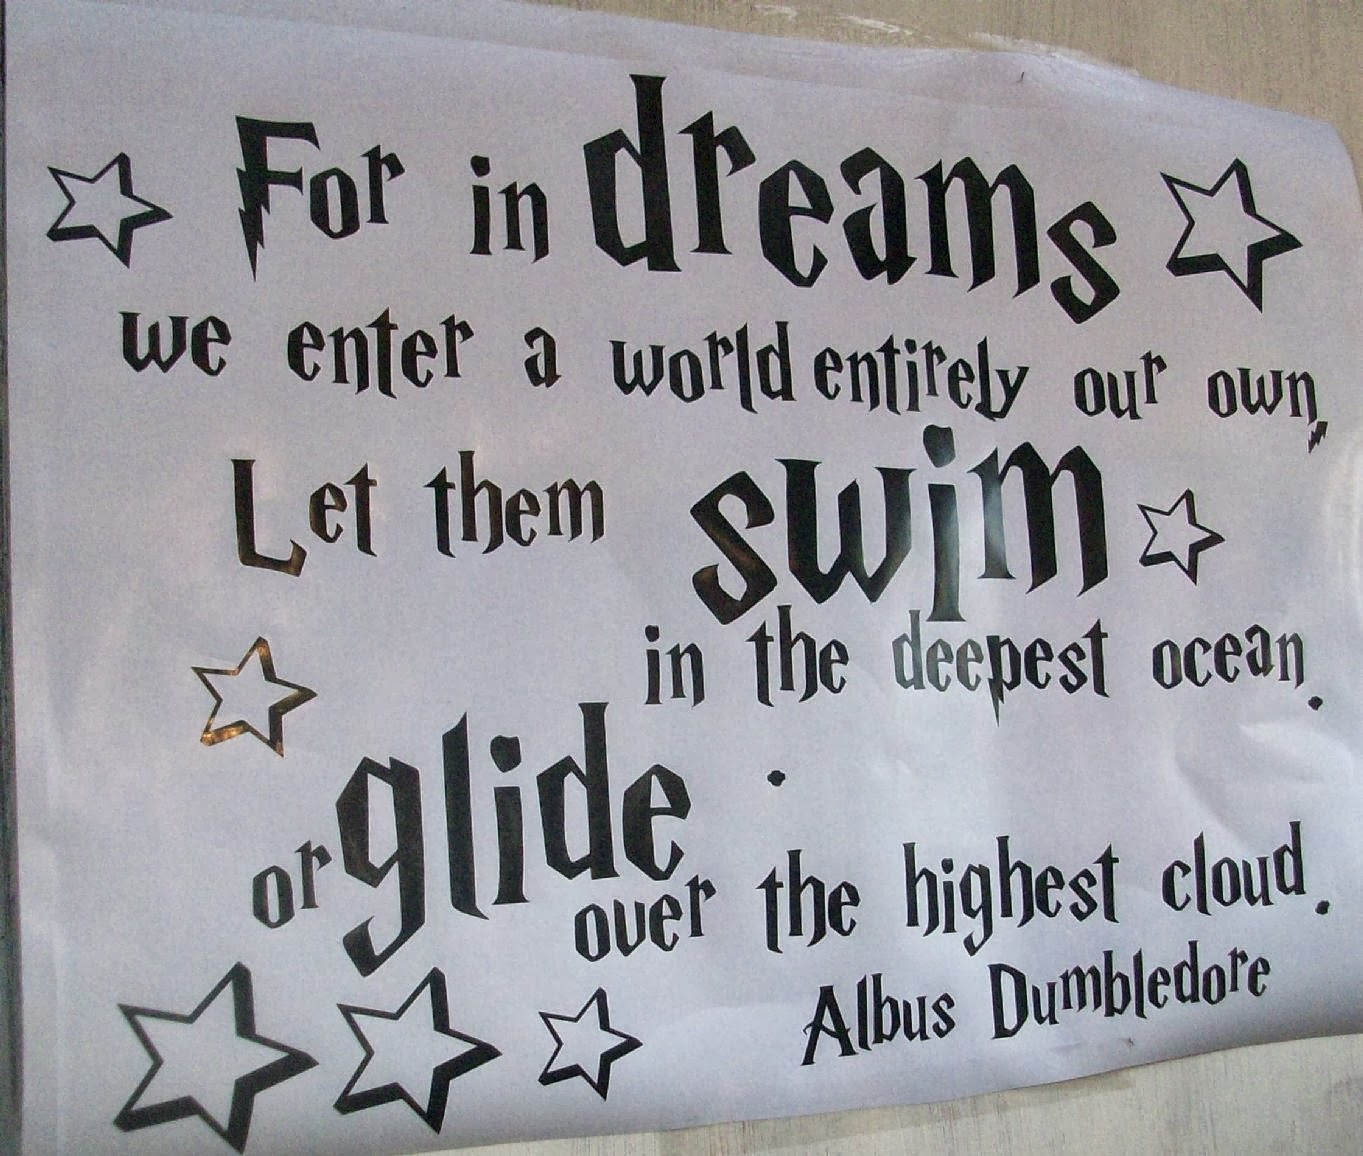 Harry Potter Friendship Wallpaper Quotes: Cute Quotes About Harry Potter. QuotesGram